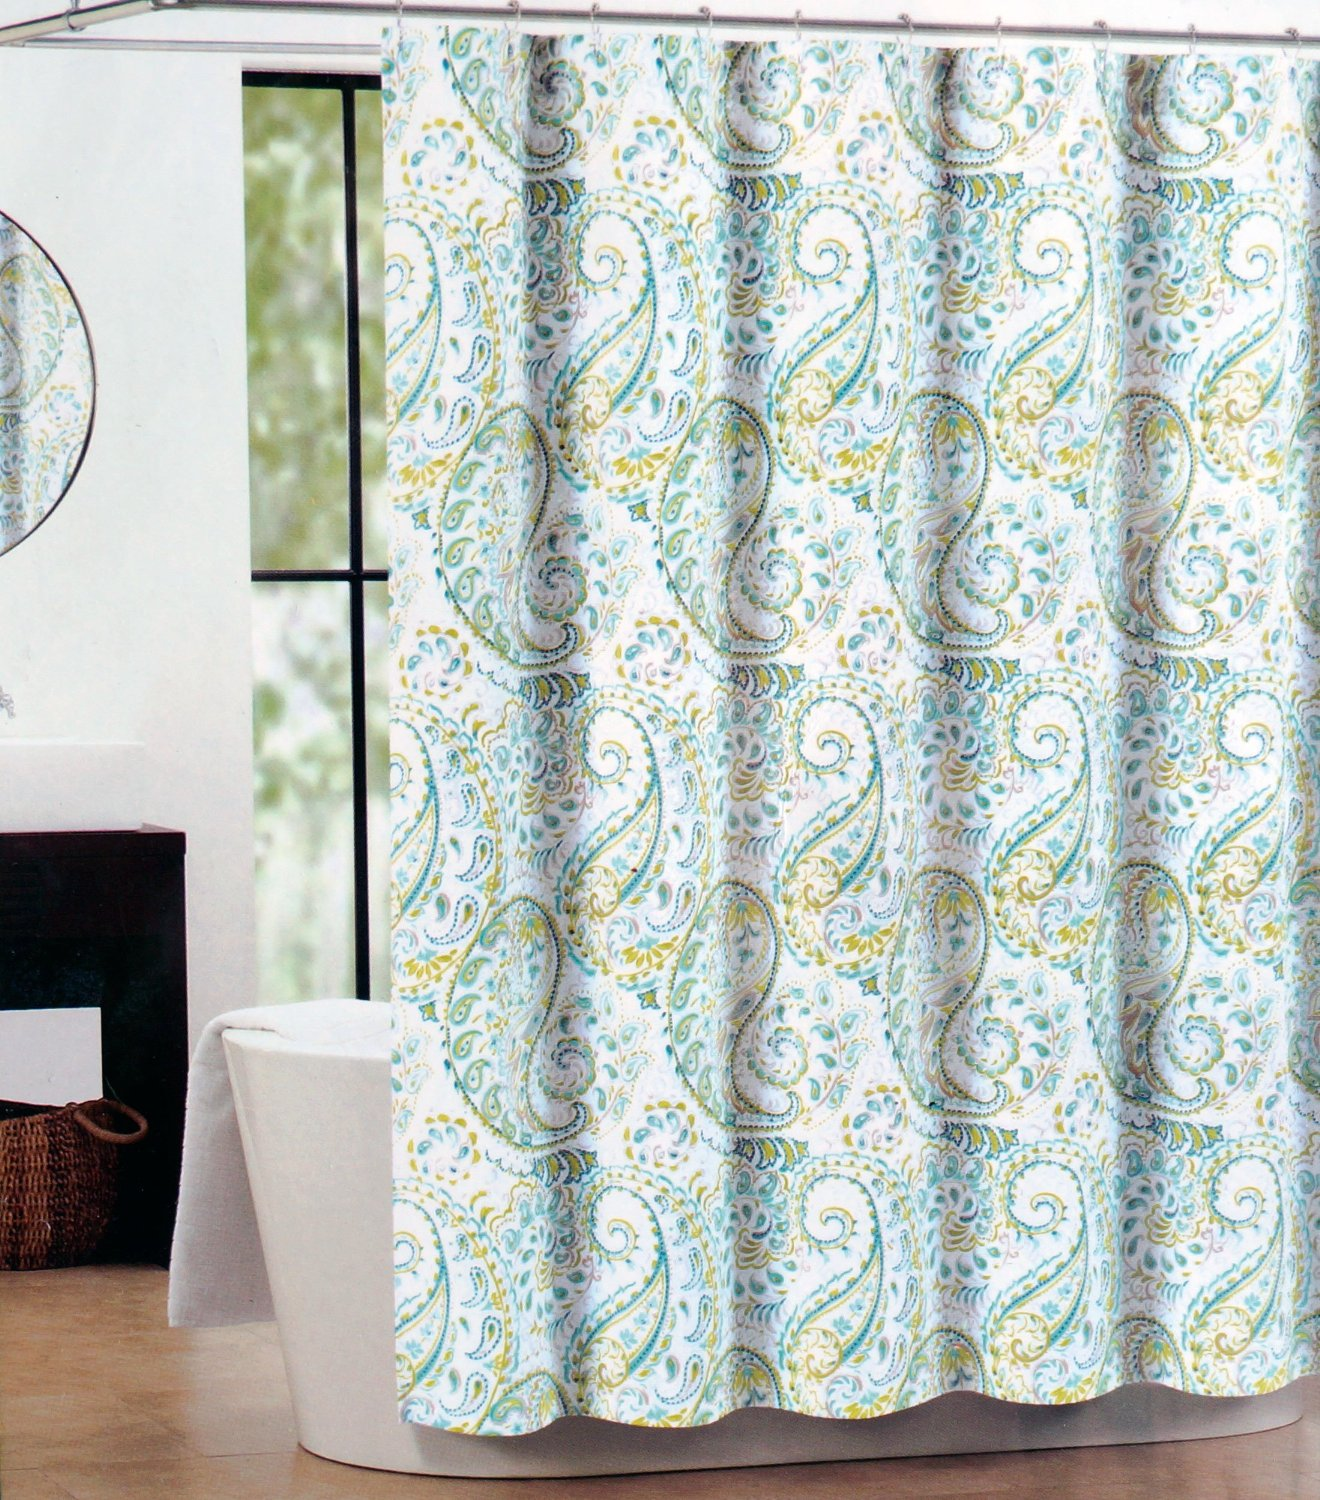 Cynthia Rowley Shower Curtain - Tahari Fabric Shower Curtain Gray Hayden Paisley, Teal, and Green